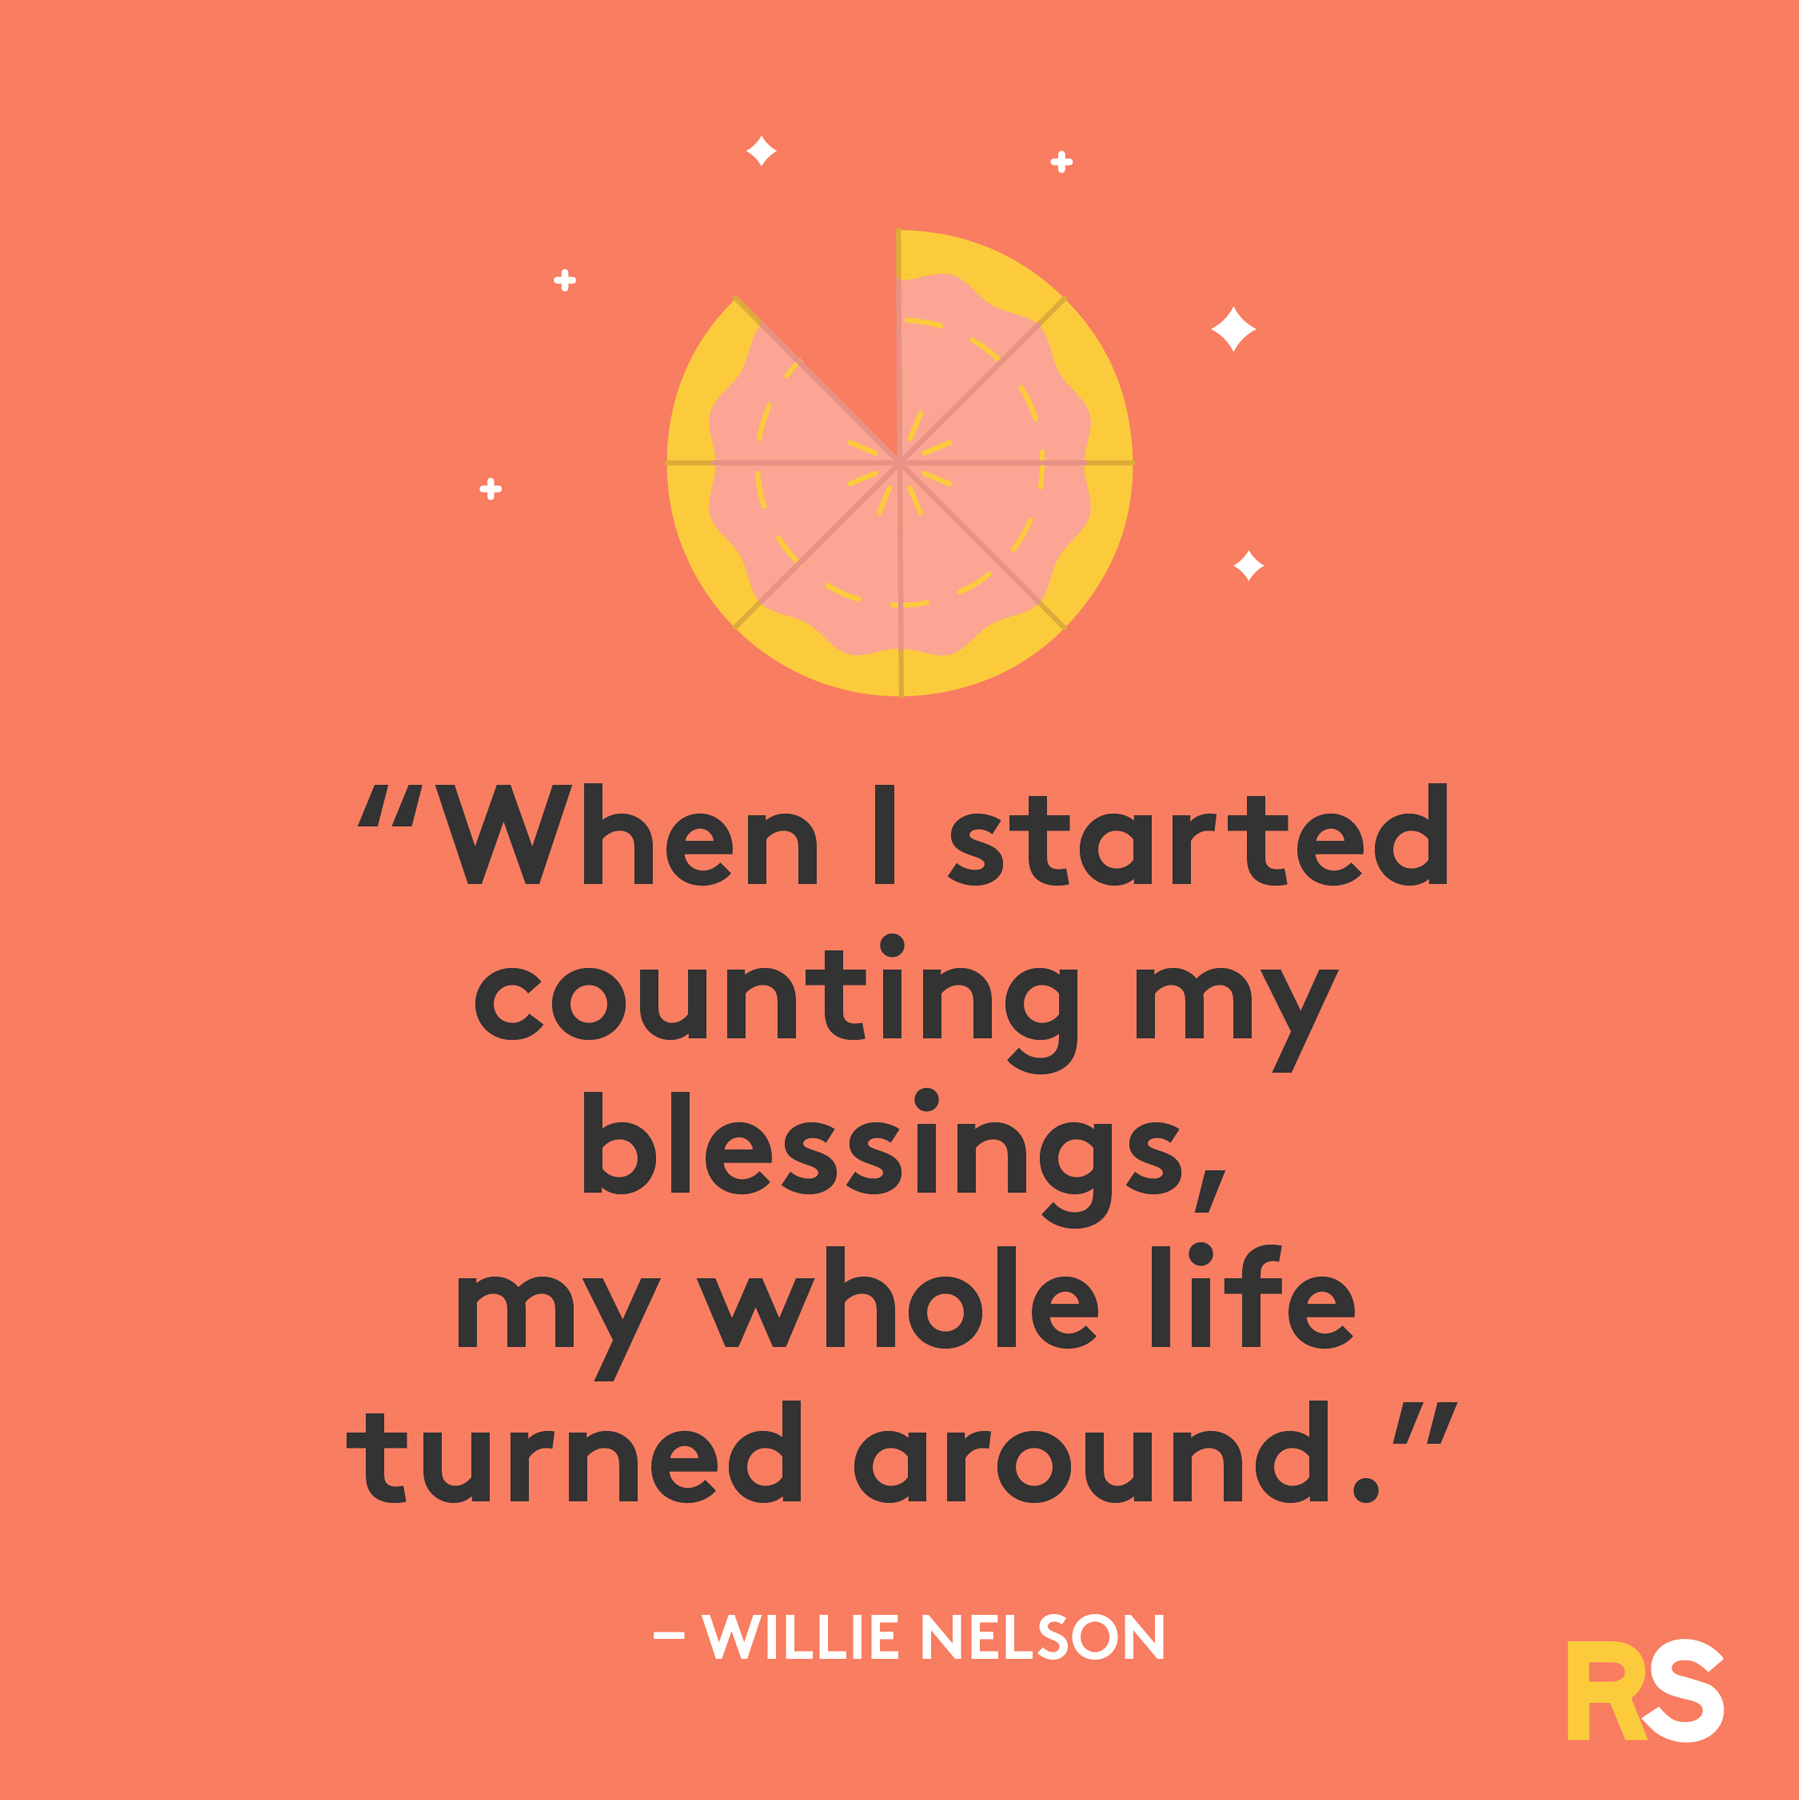 Inspirational, thankful Thanksgiving quotes - Willie Nelson